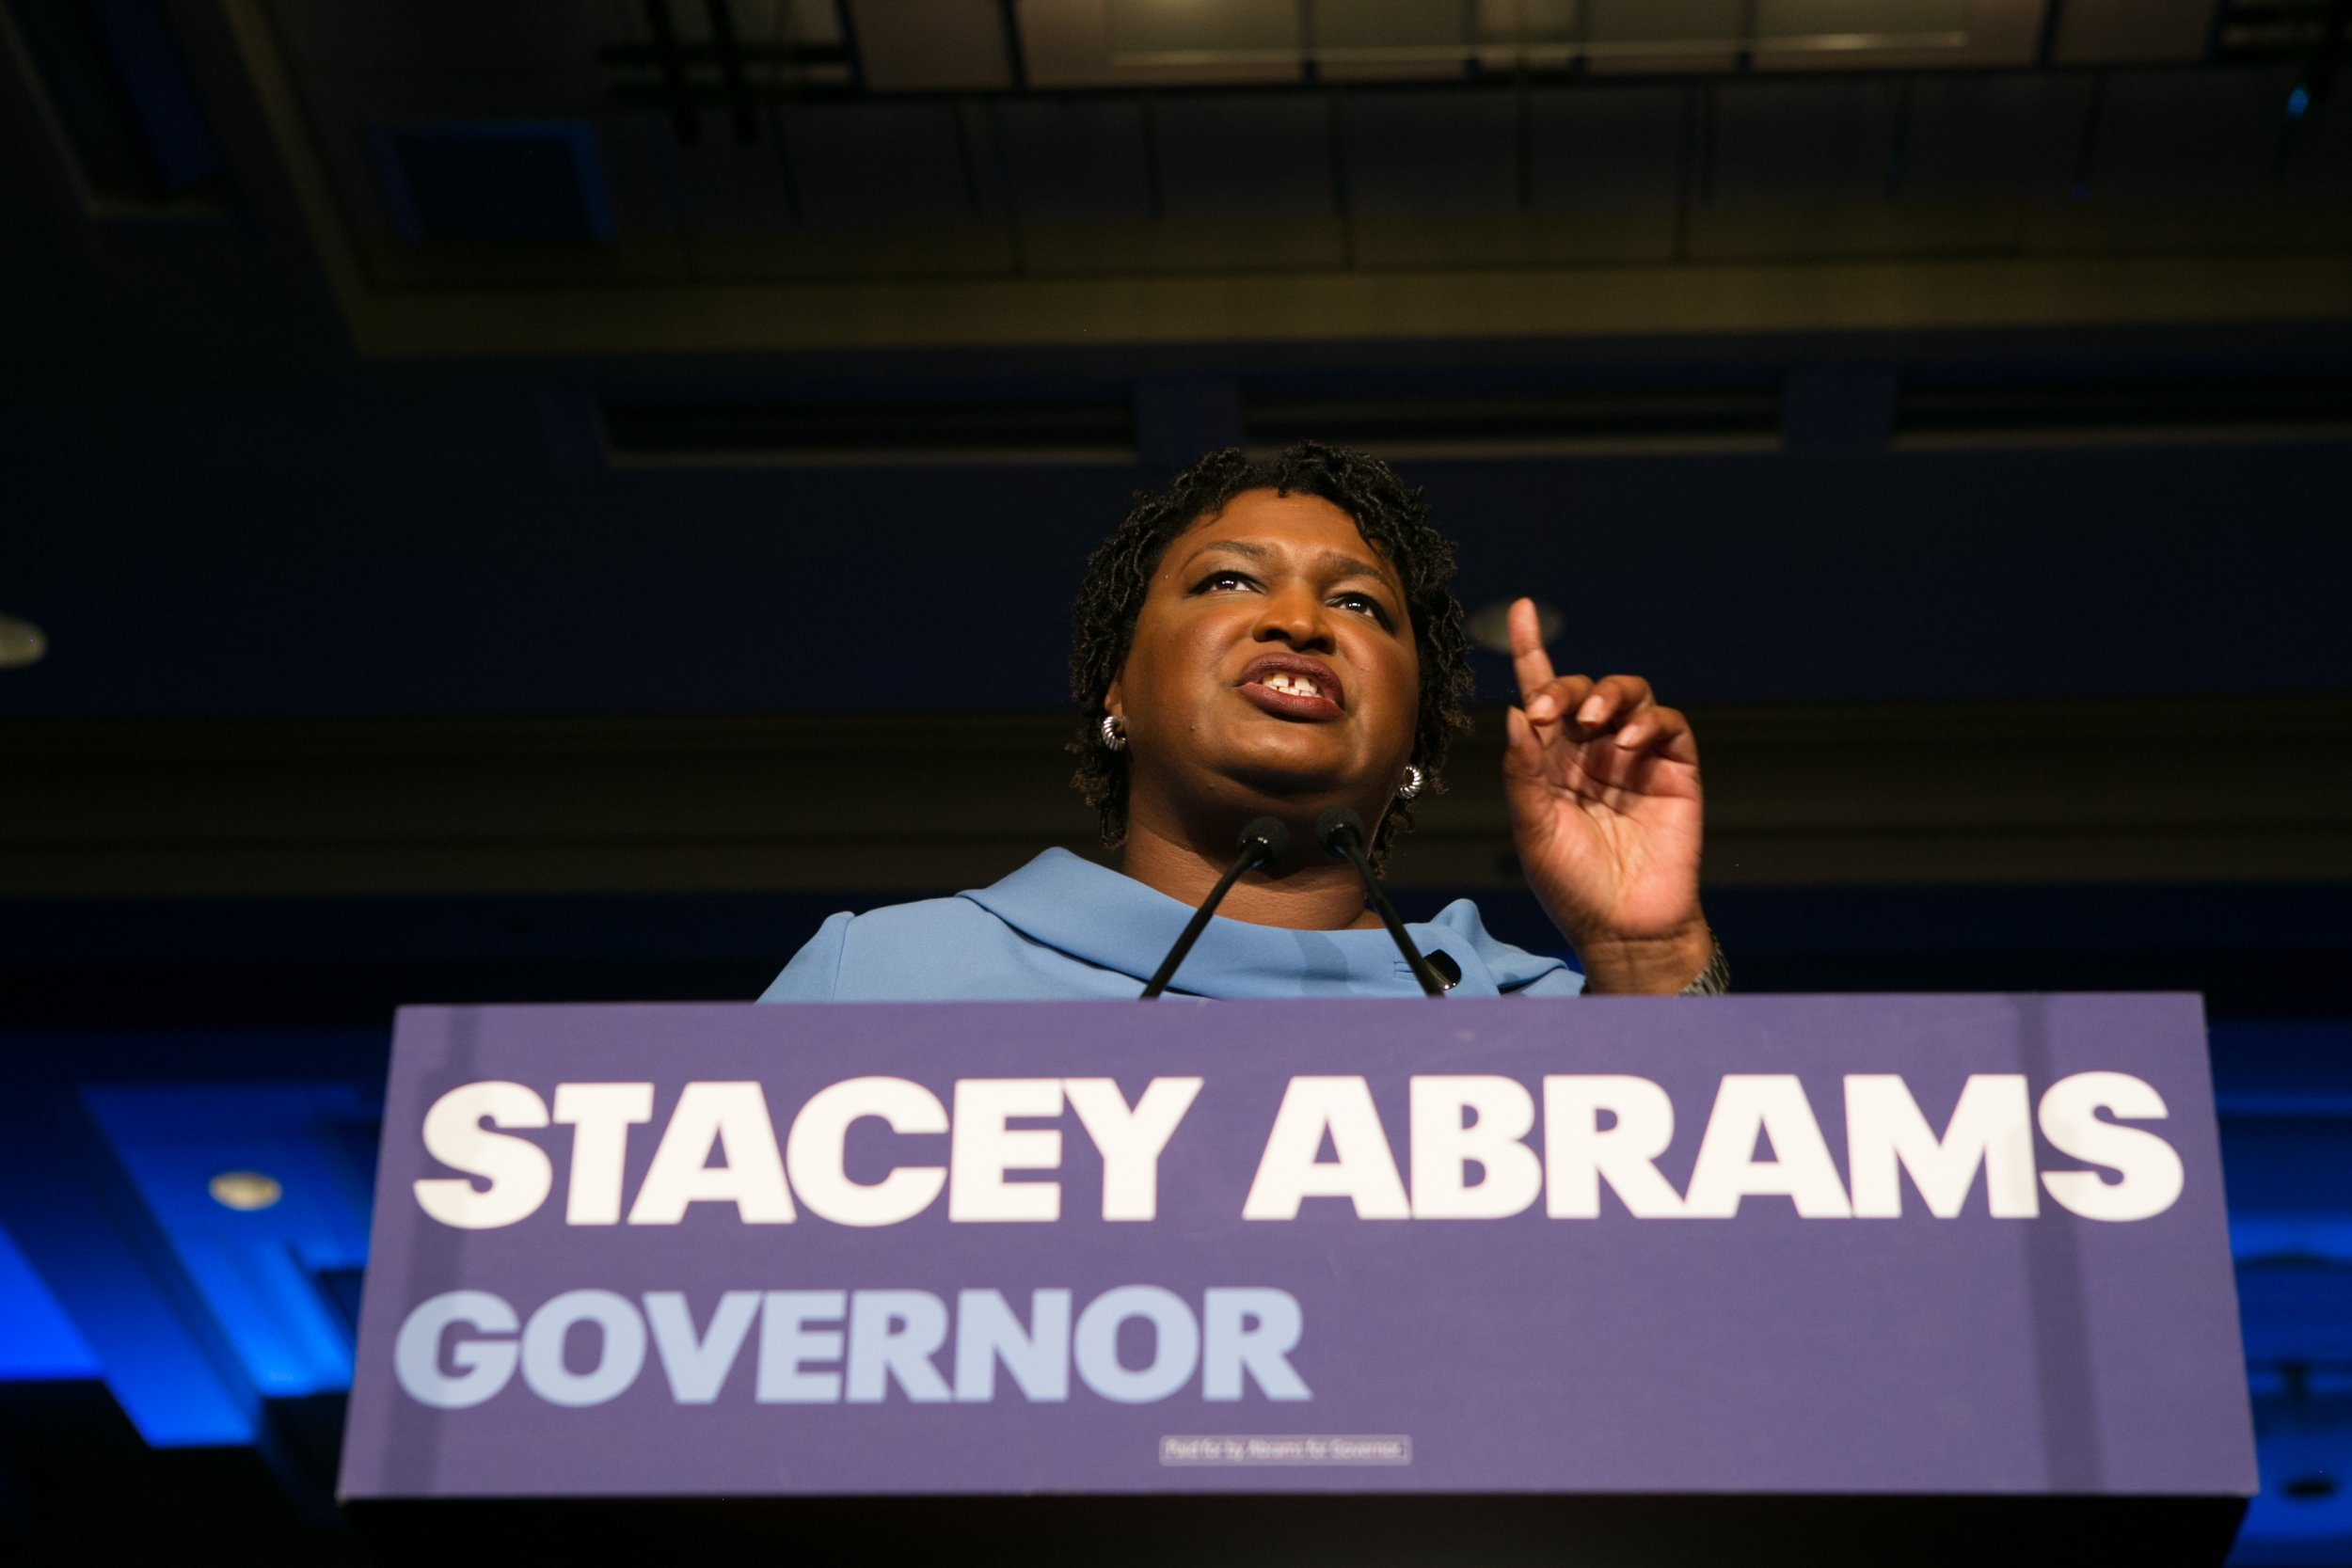 stacey abrams vs brian kemp georgia election results